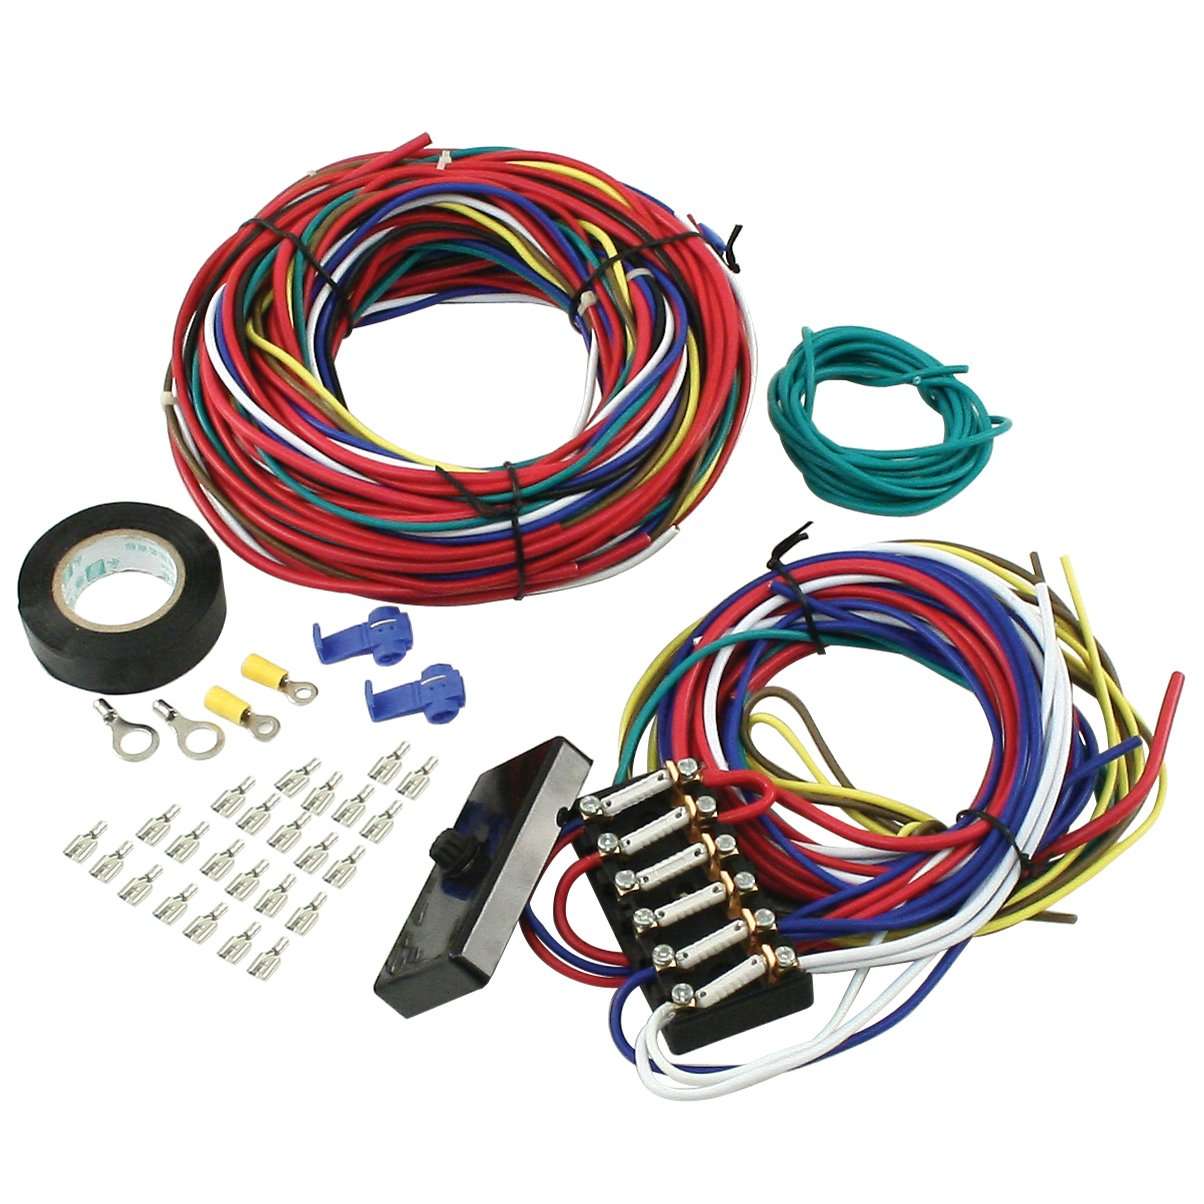 712Fyt3MSiL._SL1204_ amazon com empi 00 9466 0 wire loom kit, vw buggy, sand rail sand rail wiring harness at gsmx.co